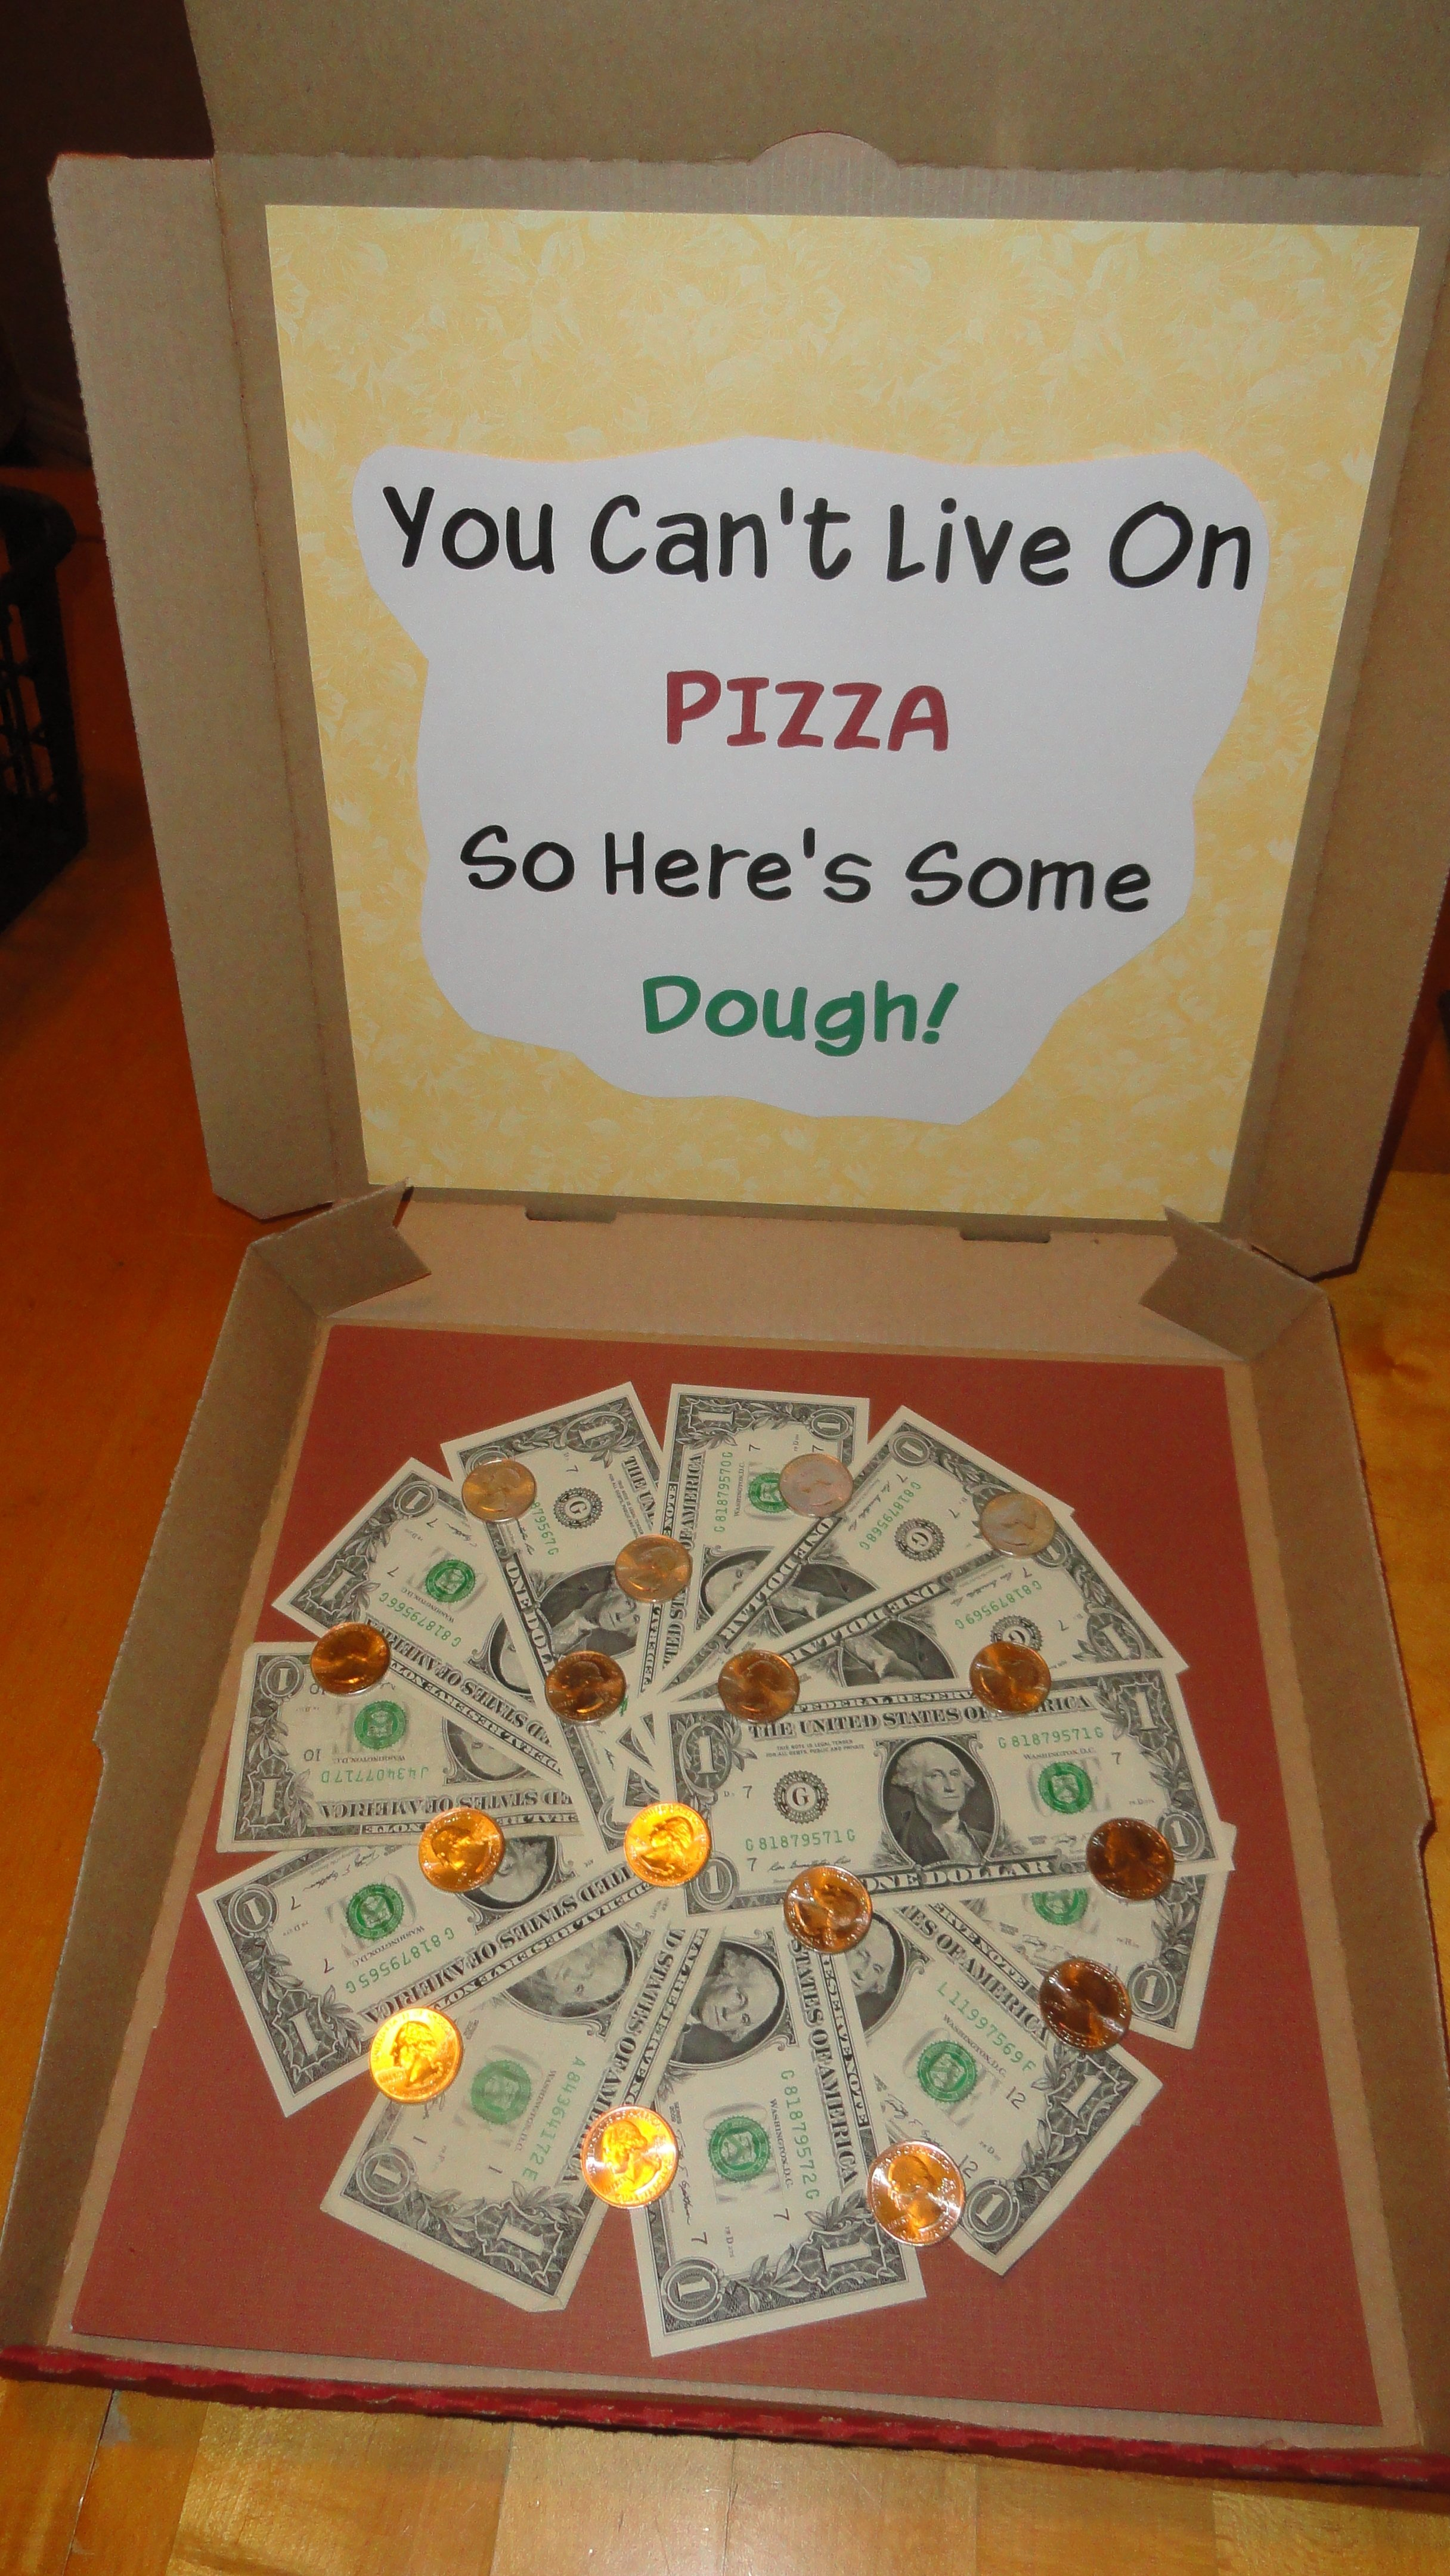 10 Pretty Ideas For White Elephant Gifts money pizza white elephant or gift how cool is it to open a pizza 1 2020